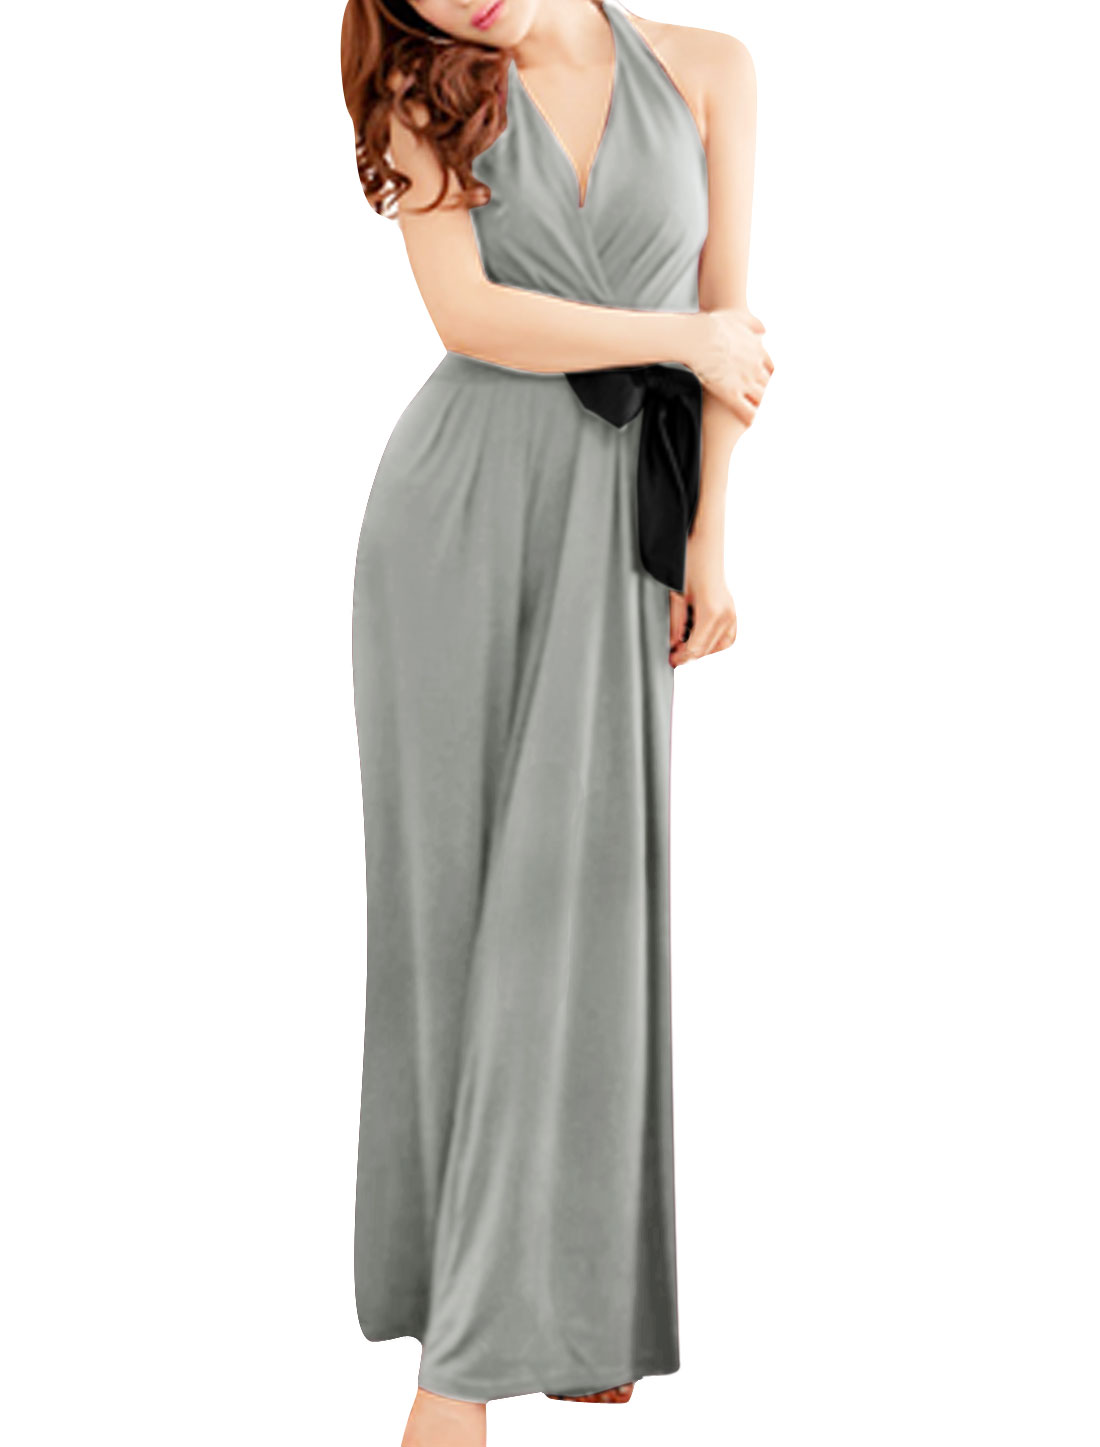 Chic Cross V Neck Lace Up Halter Neck Light Gray Jumpsuit for Lady XL